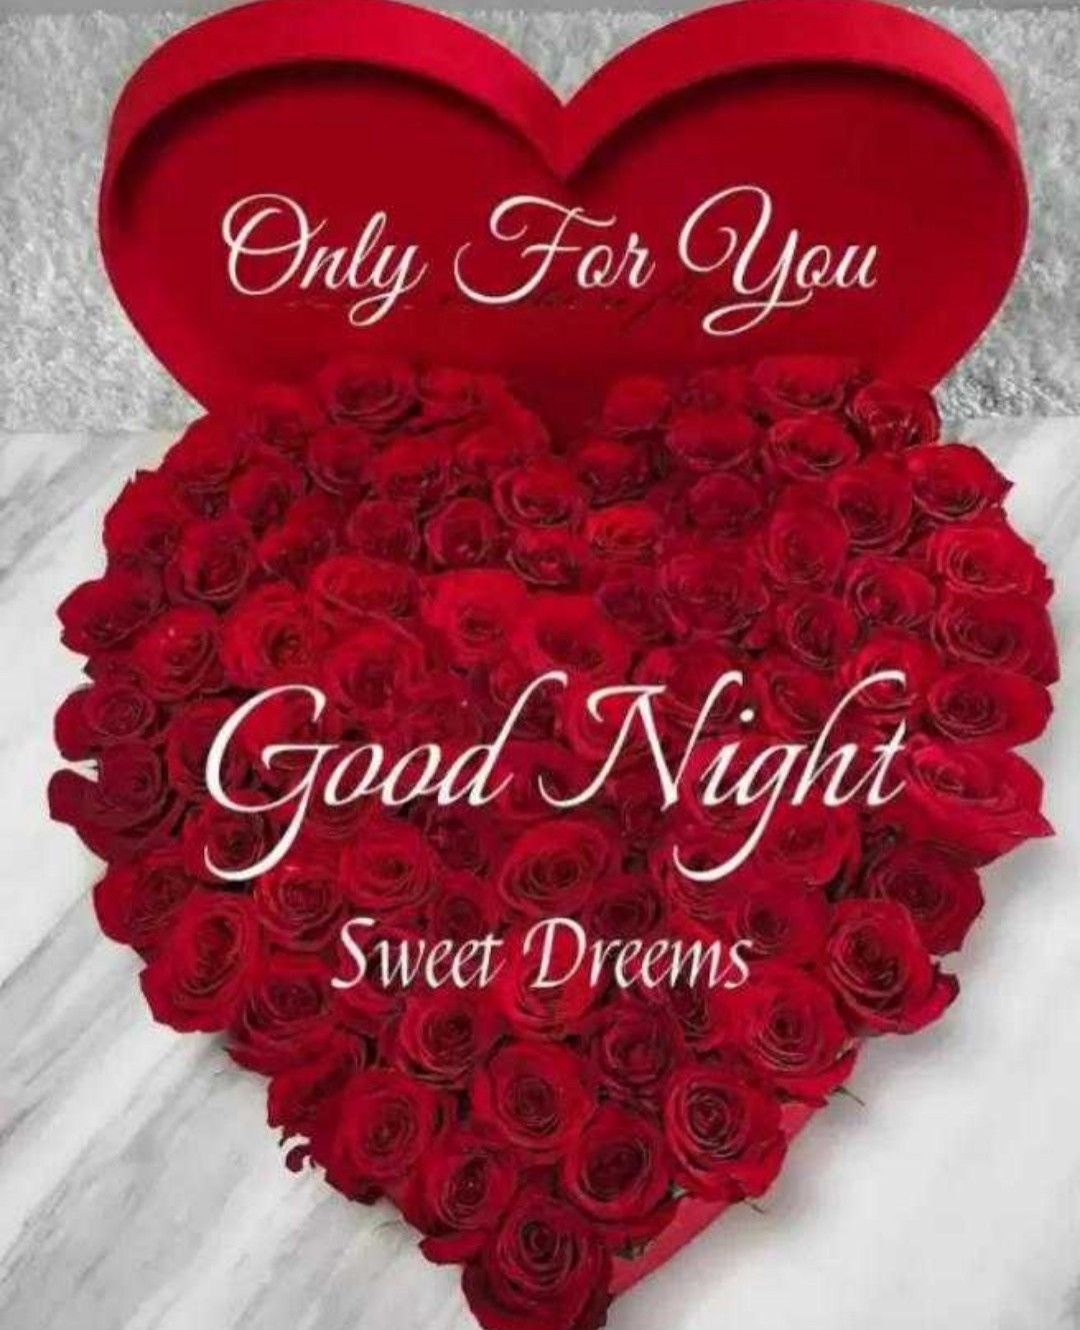 Best Good Night Images || Good Night Images Of Love || Good Night Images With Love || Good Night Images Download